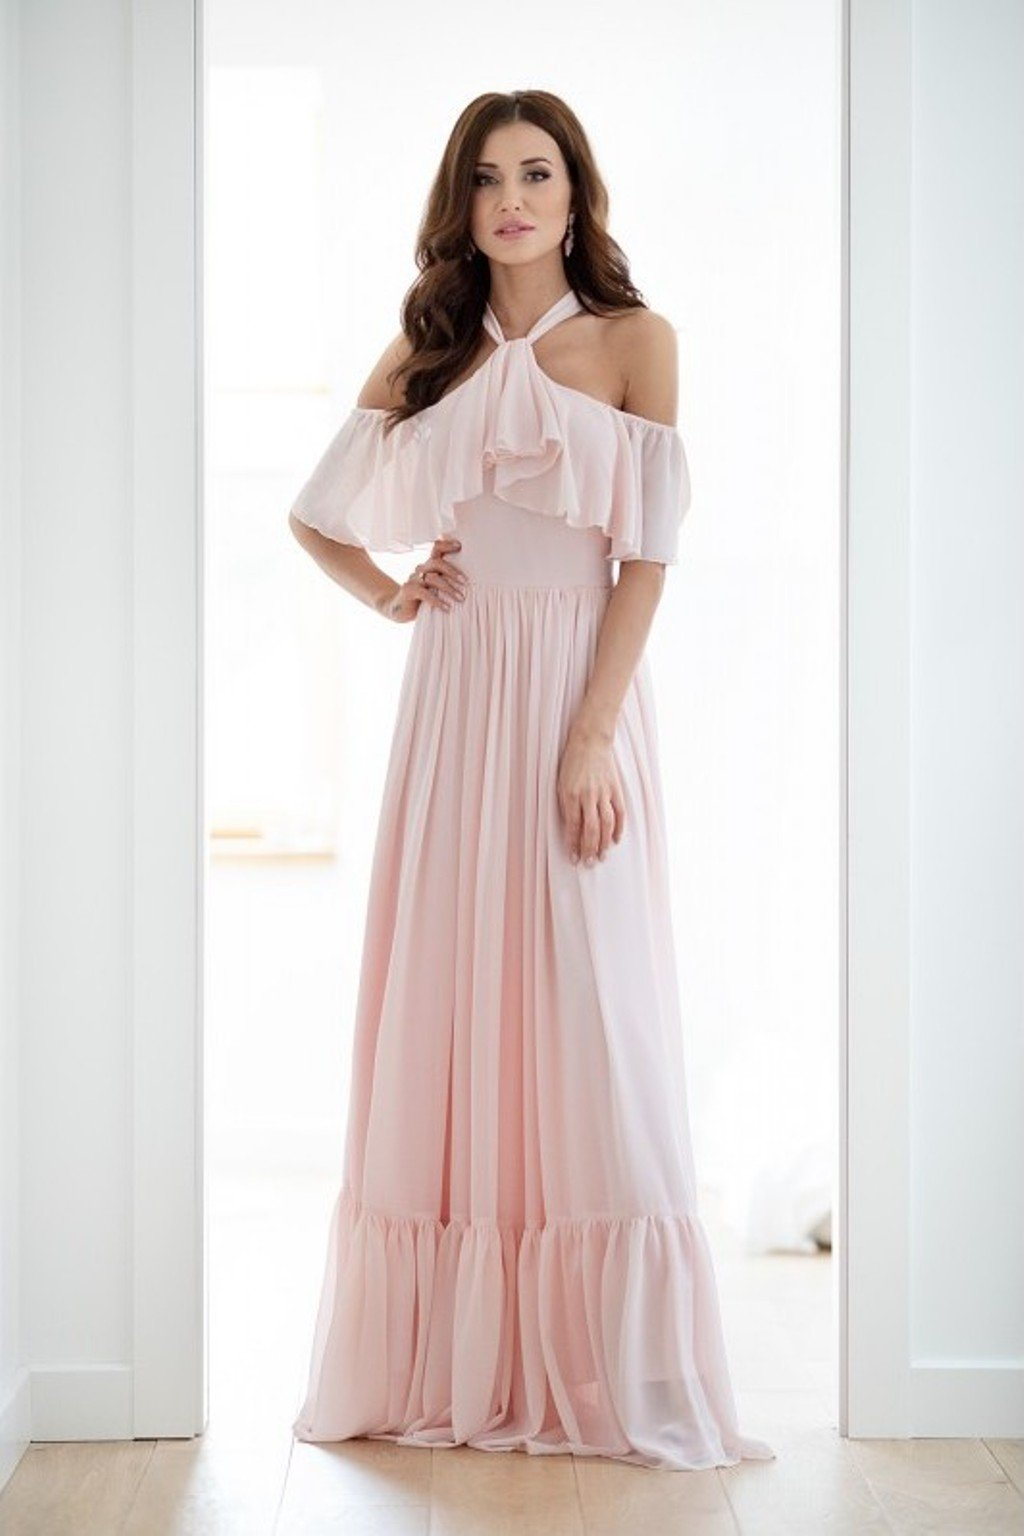 Light pink chiffon dress